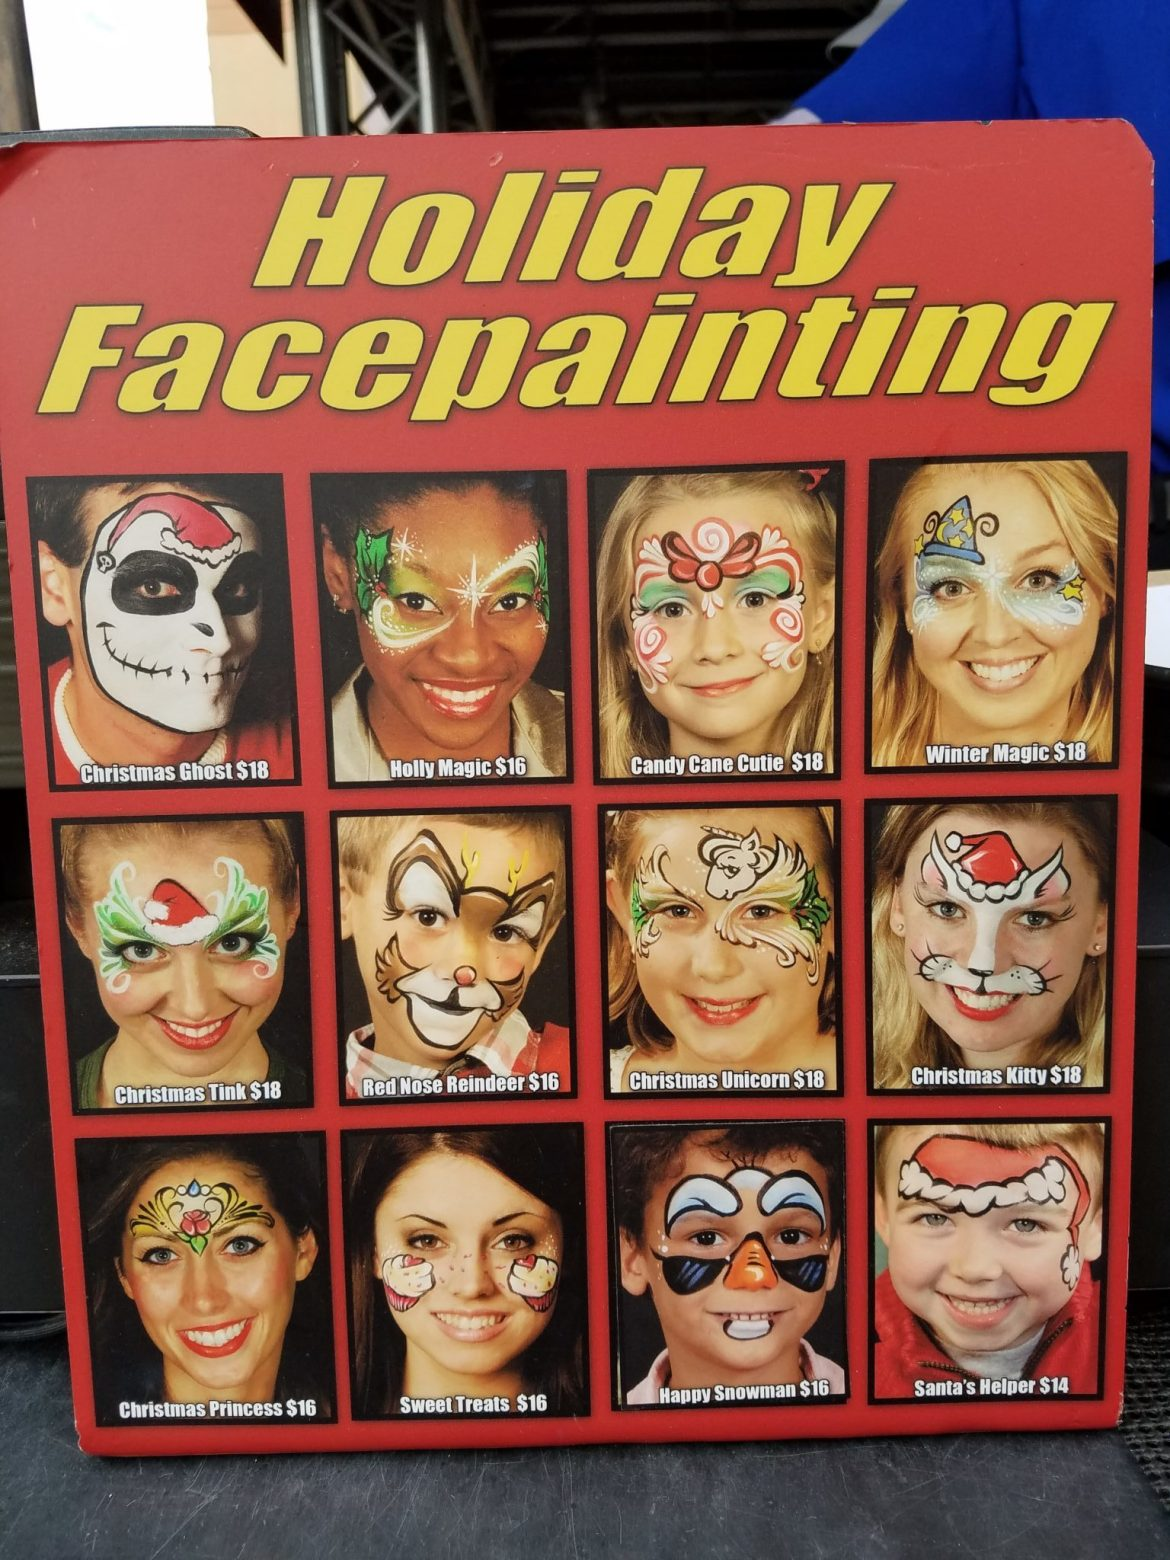 Holiday Face Painting Now Available At Disney's Hollywood Studios